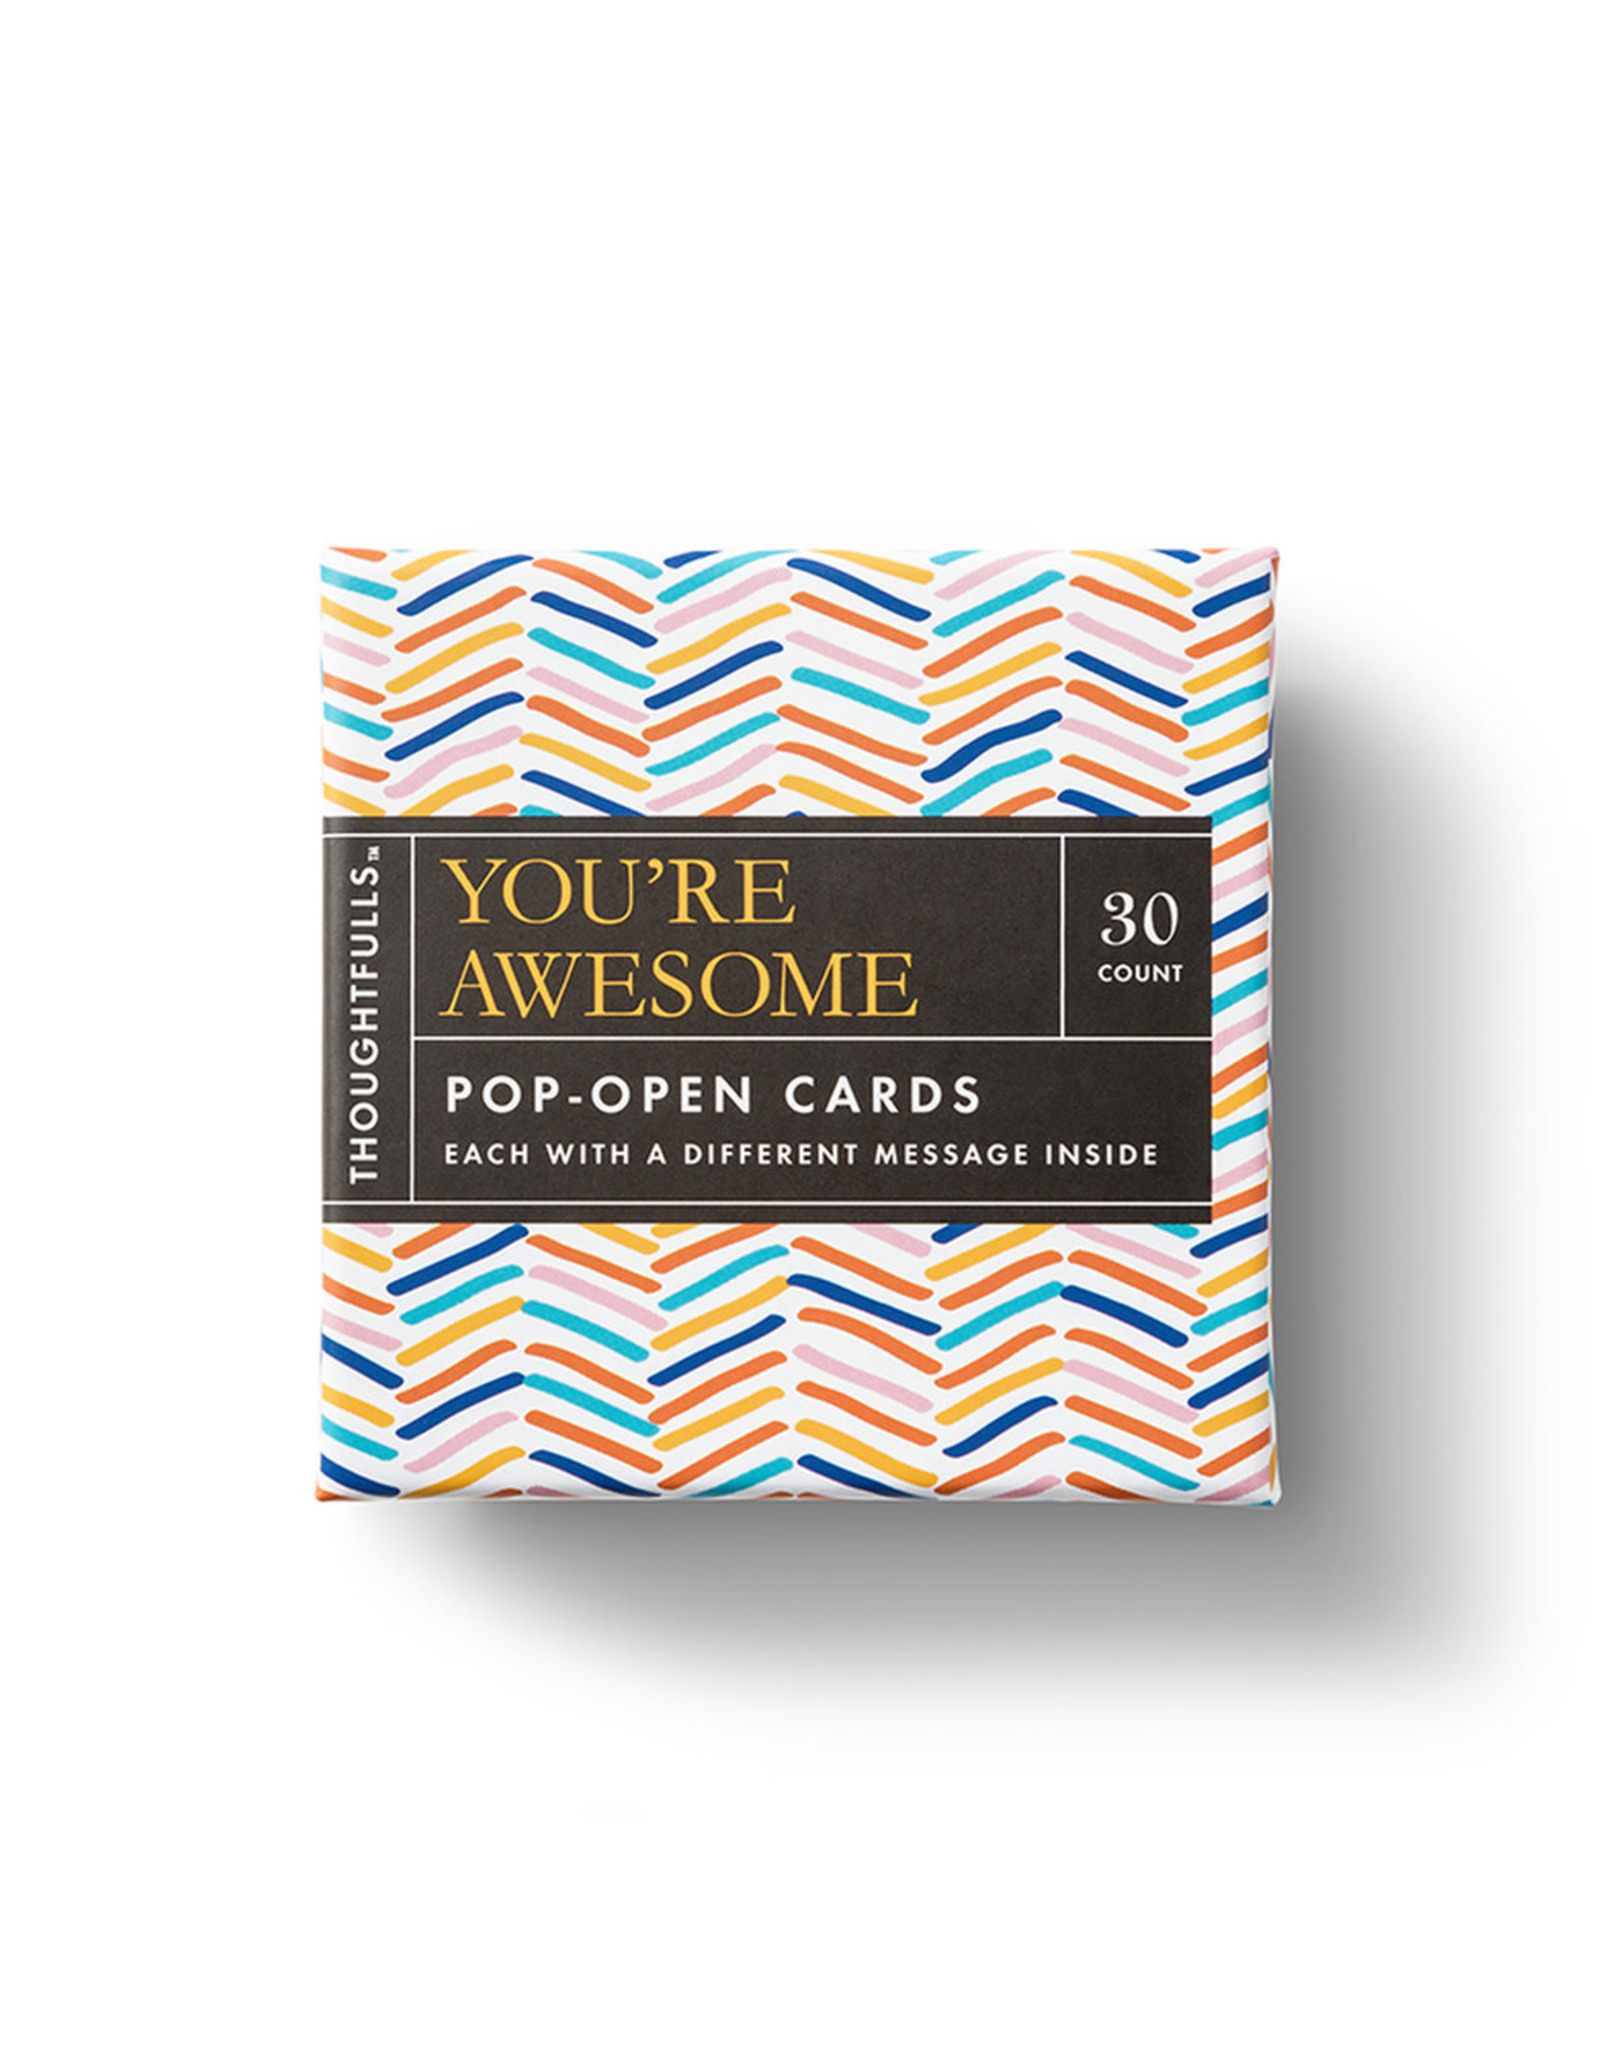 Compendium Compendium Thoughtfuls - You're Awesome